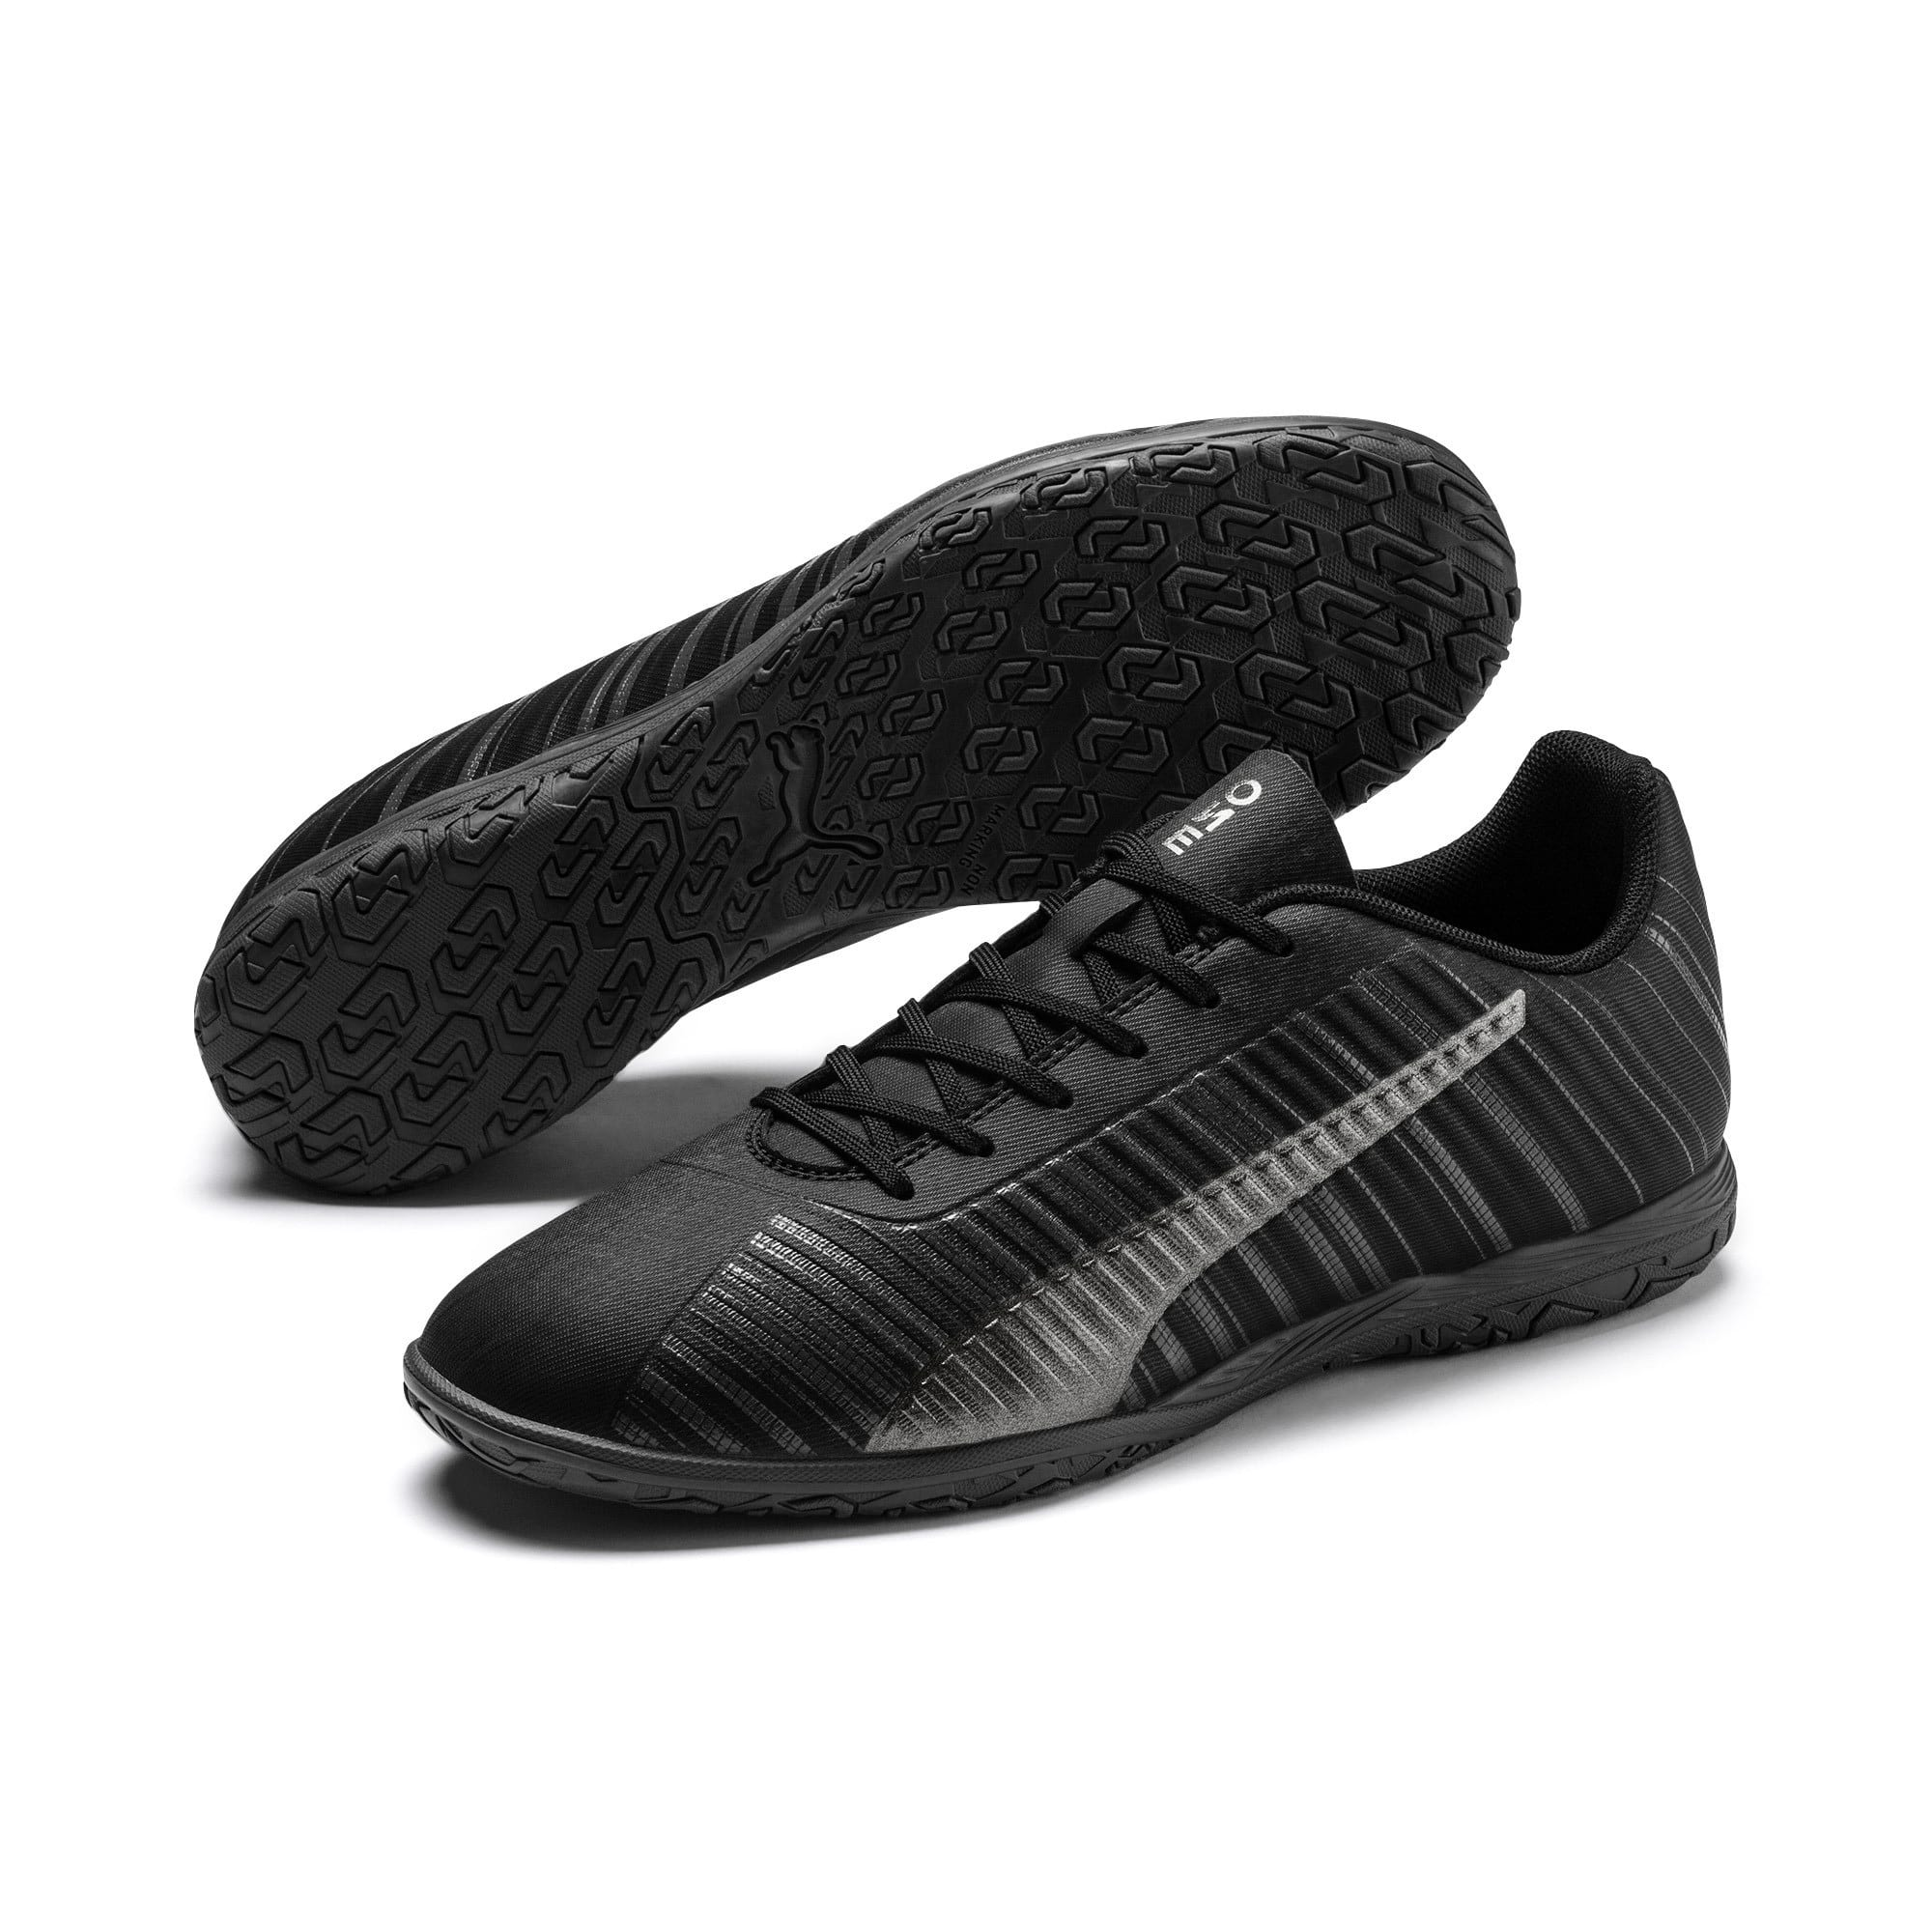 Thumbnail 3 of PUMA ONE 5.4 IT Herren Fußballschuhe, Black-Black-Puma Aged Silver, medium